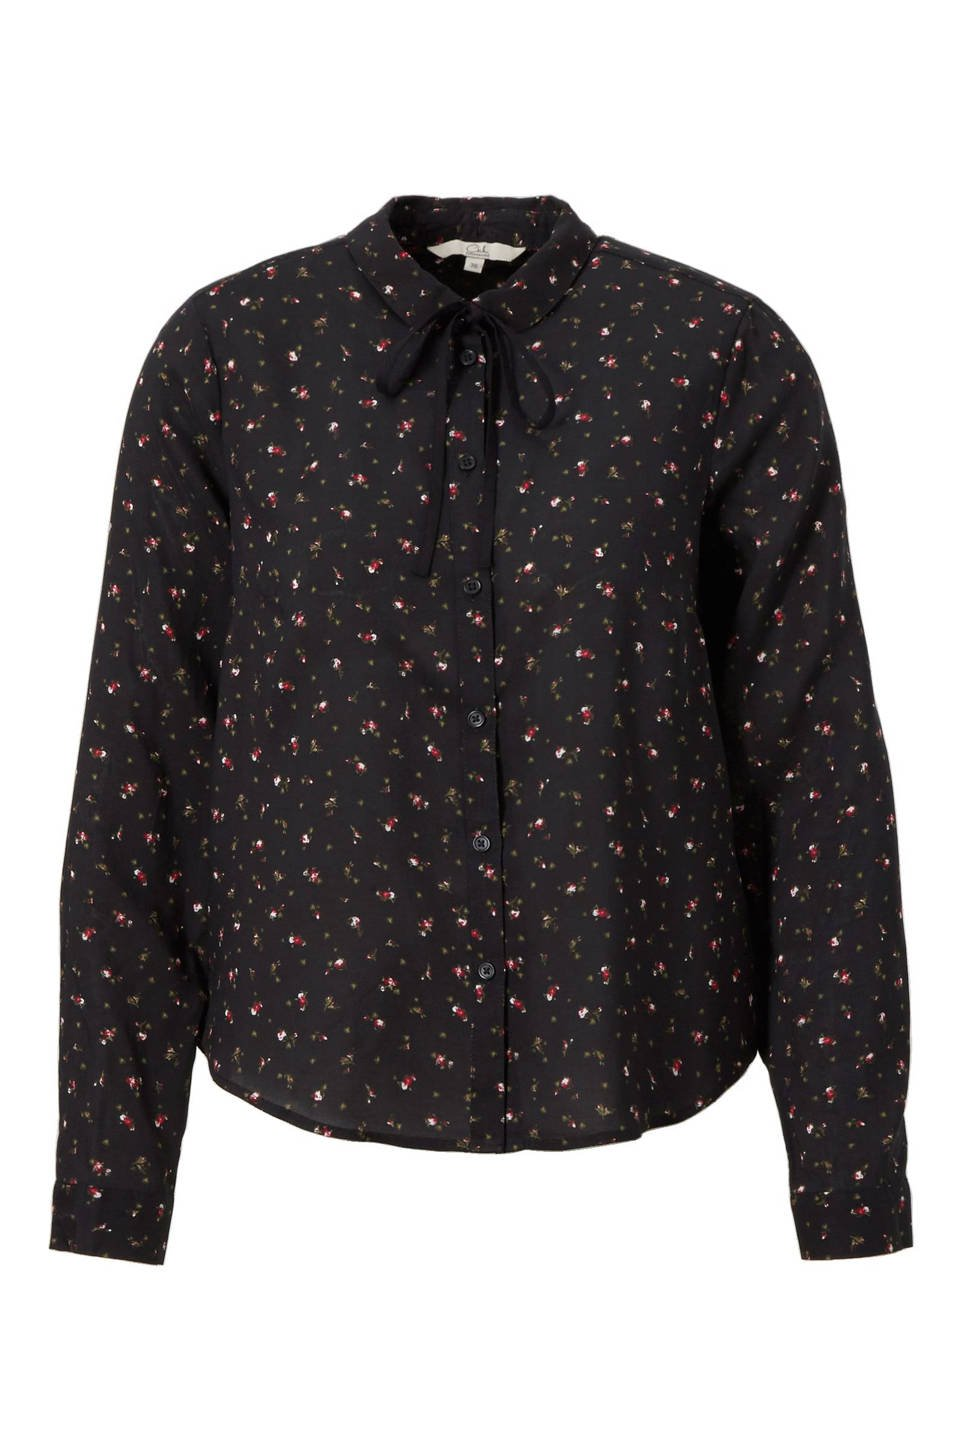 C&A Clockhouse blouse, Donkerblauw